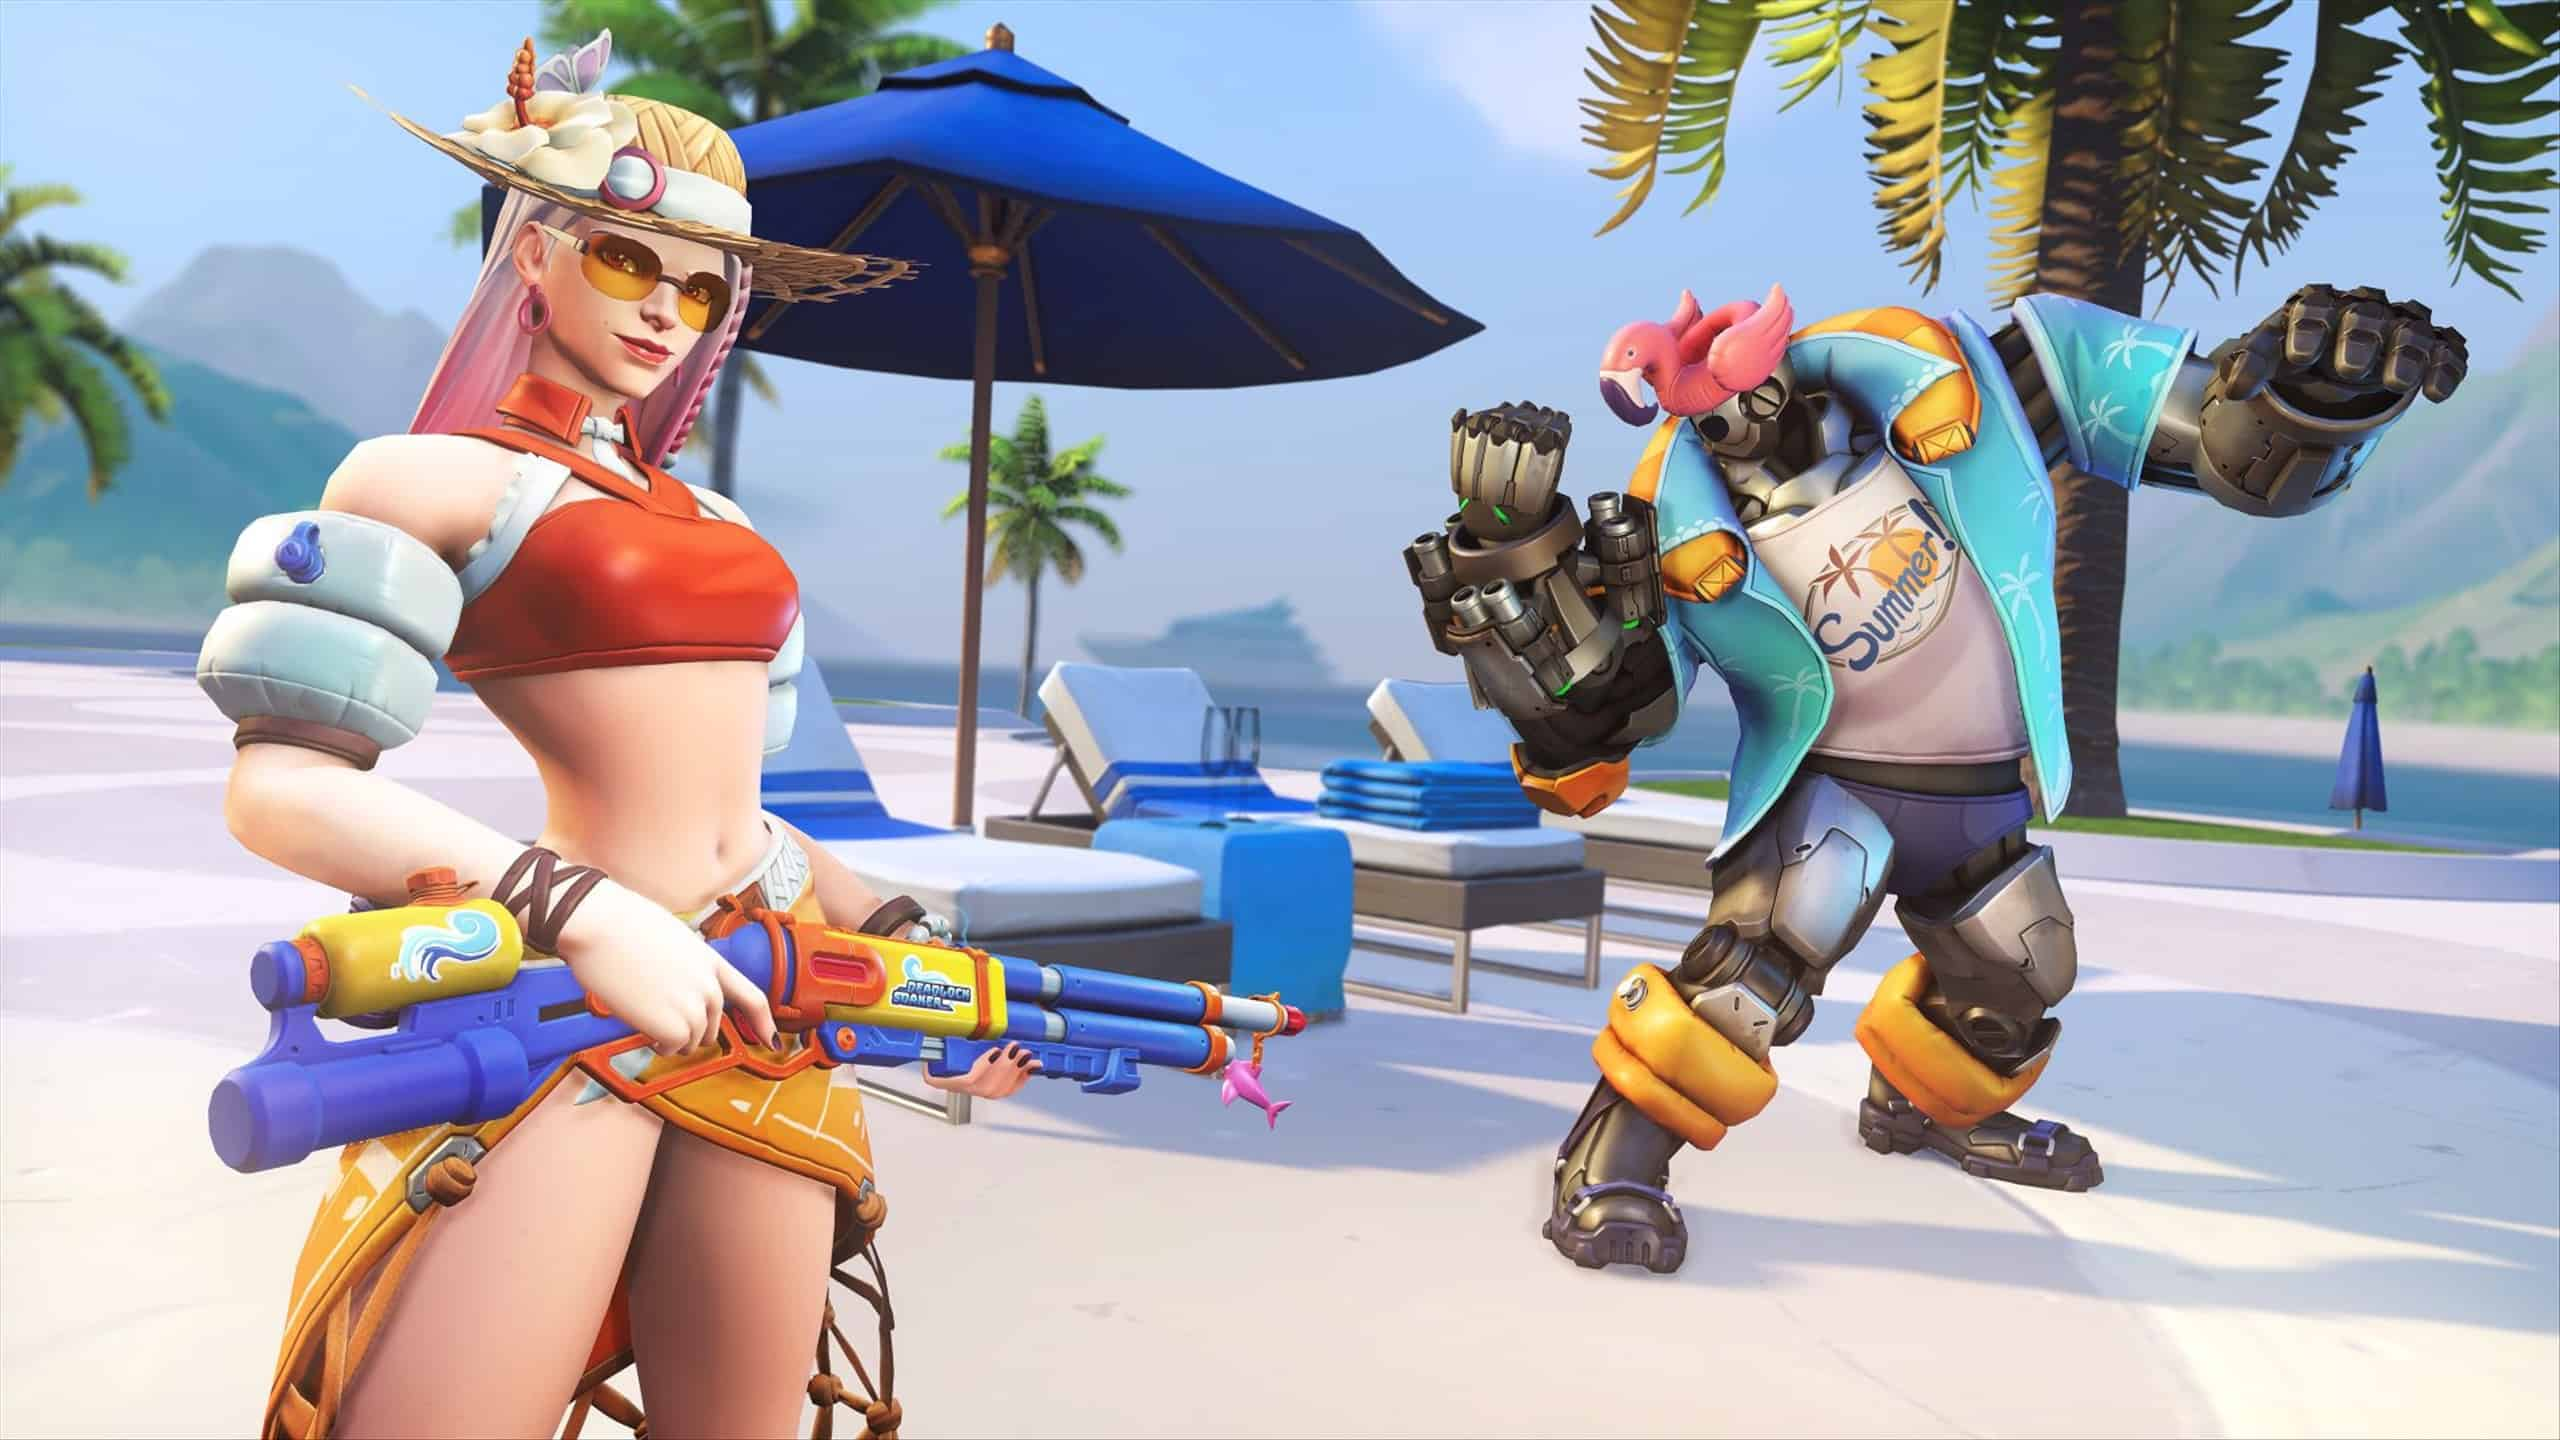 Overwatch Summer Games 2021 skins, emotes, and voicelines are here